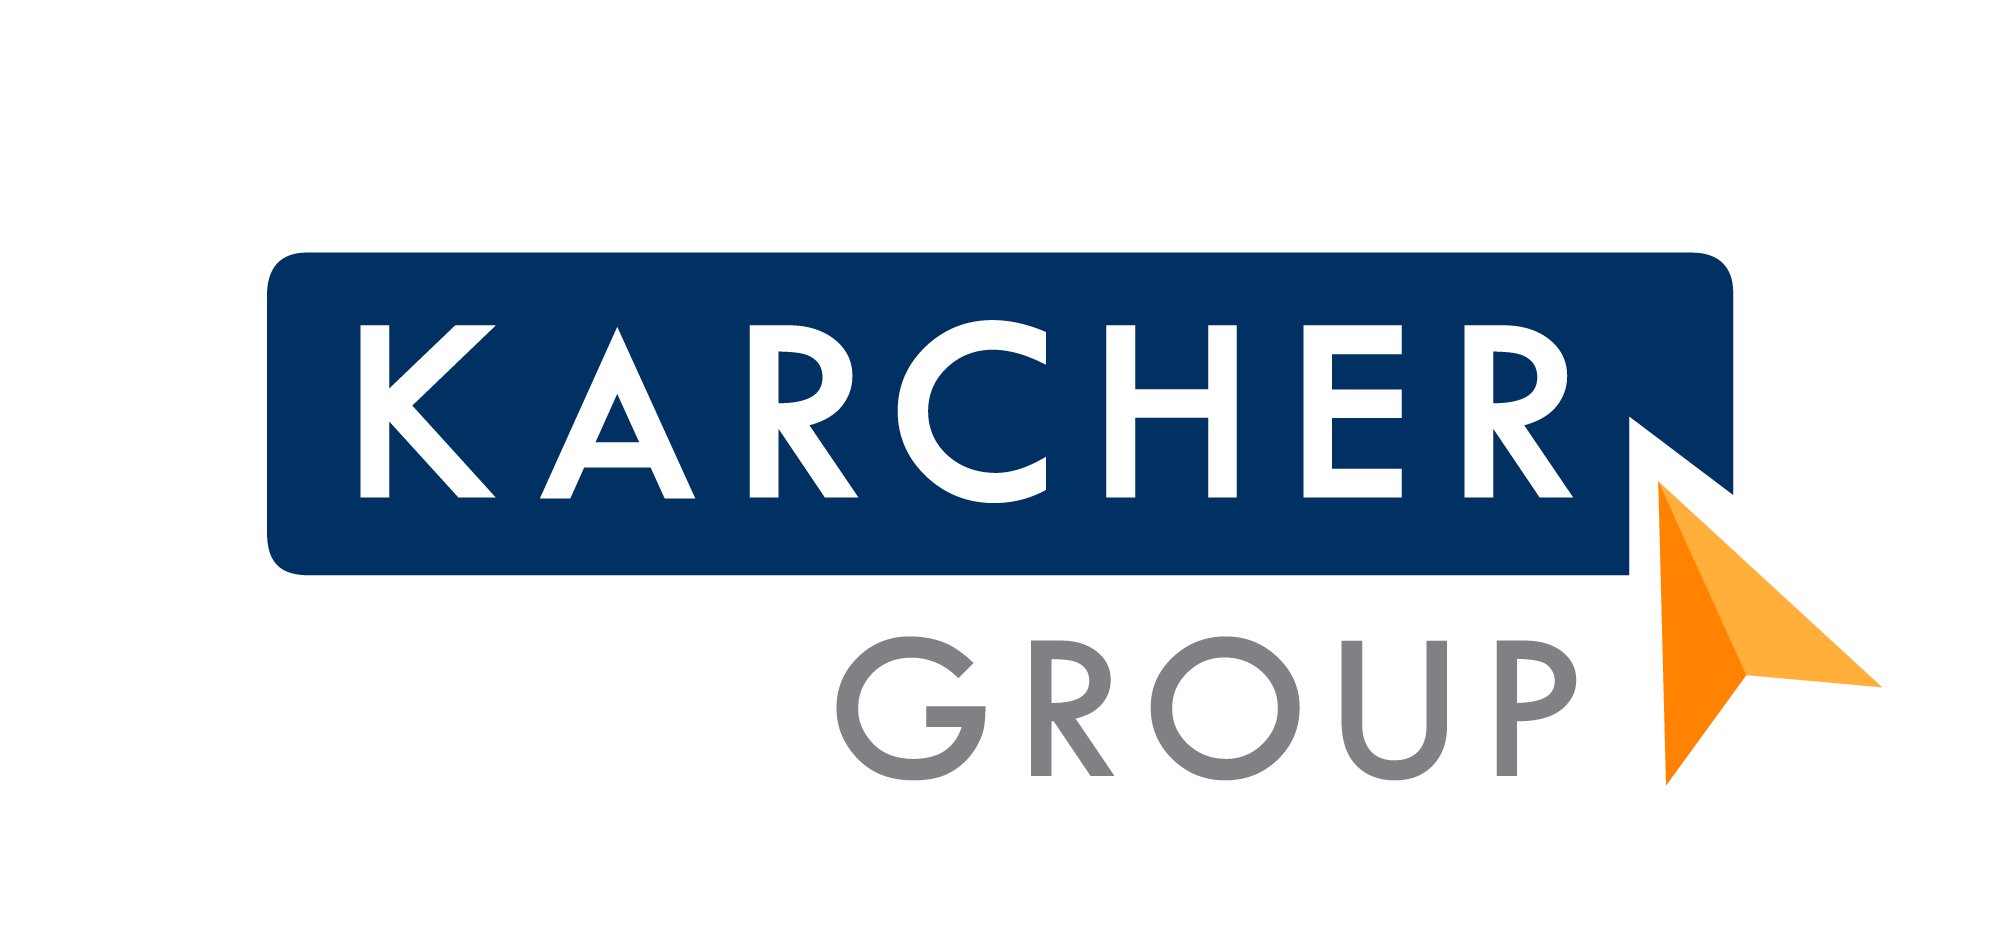 The Karcher Group